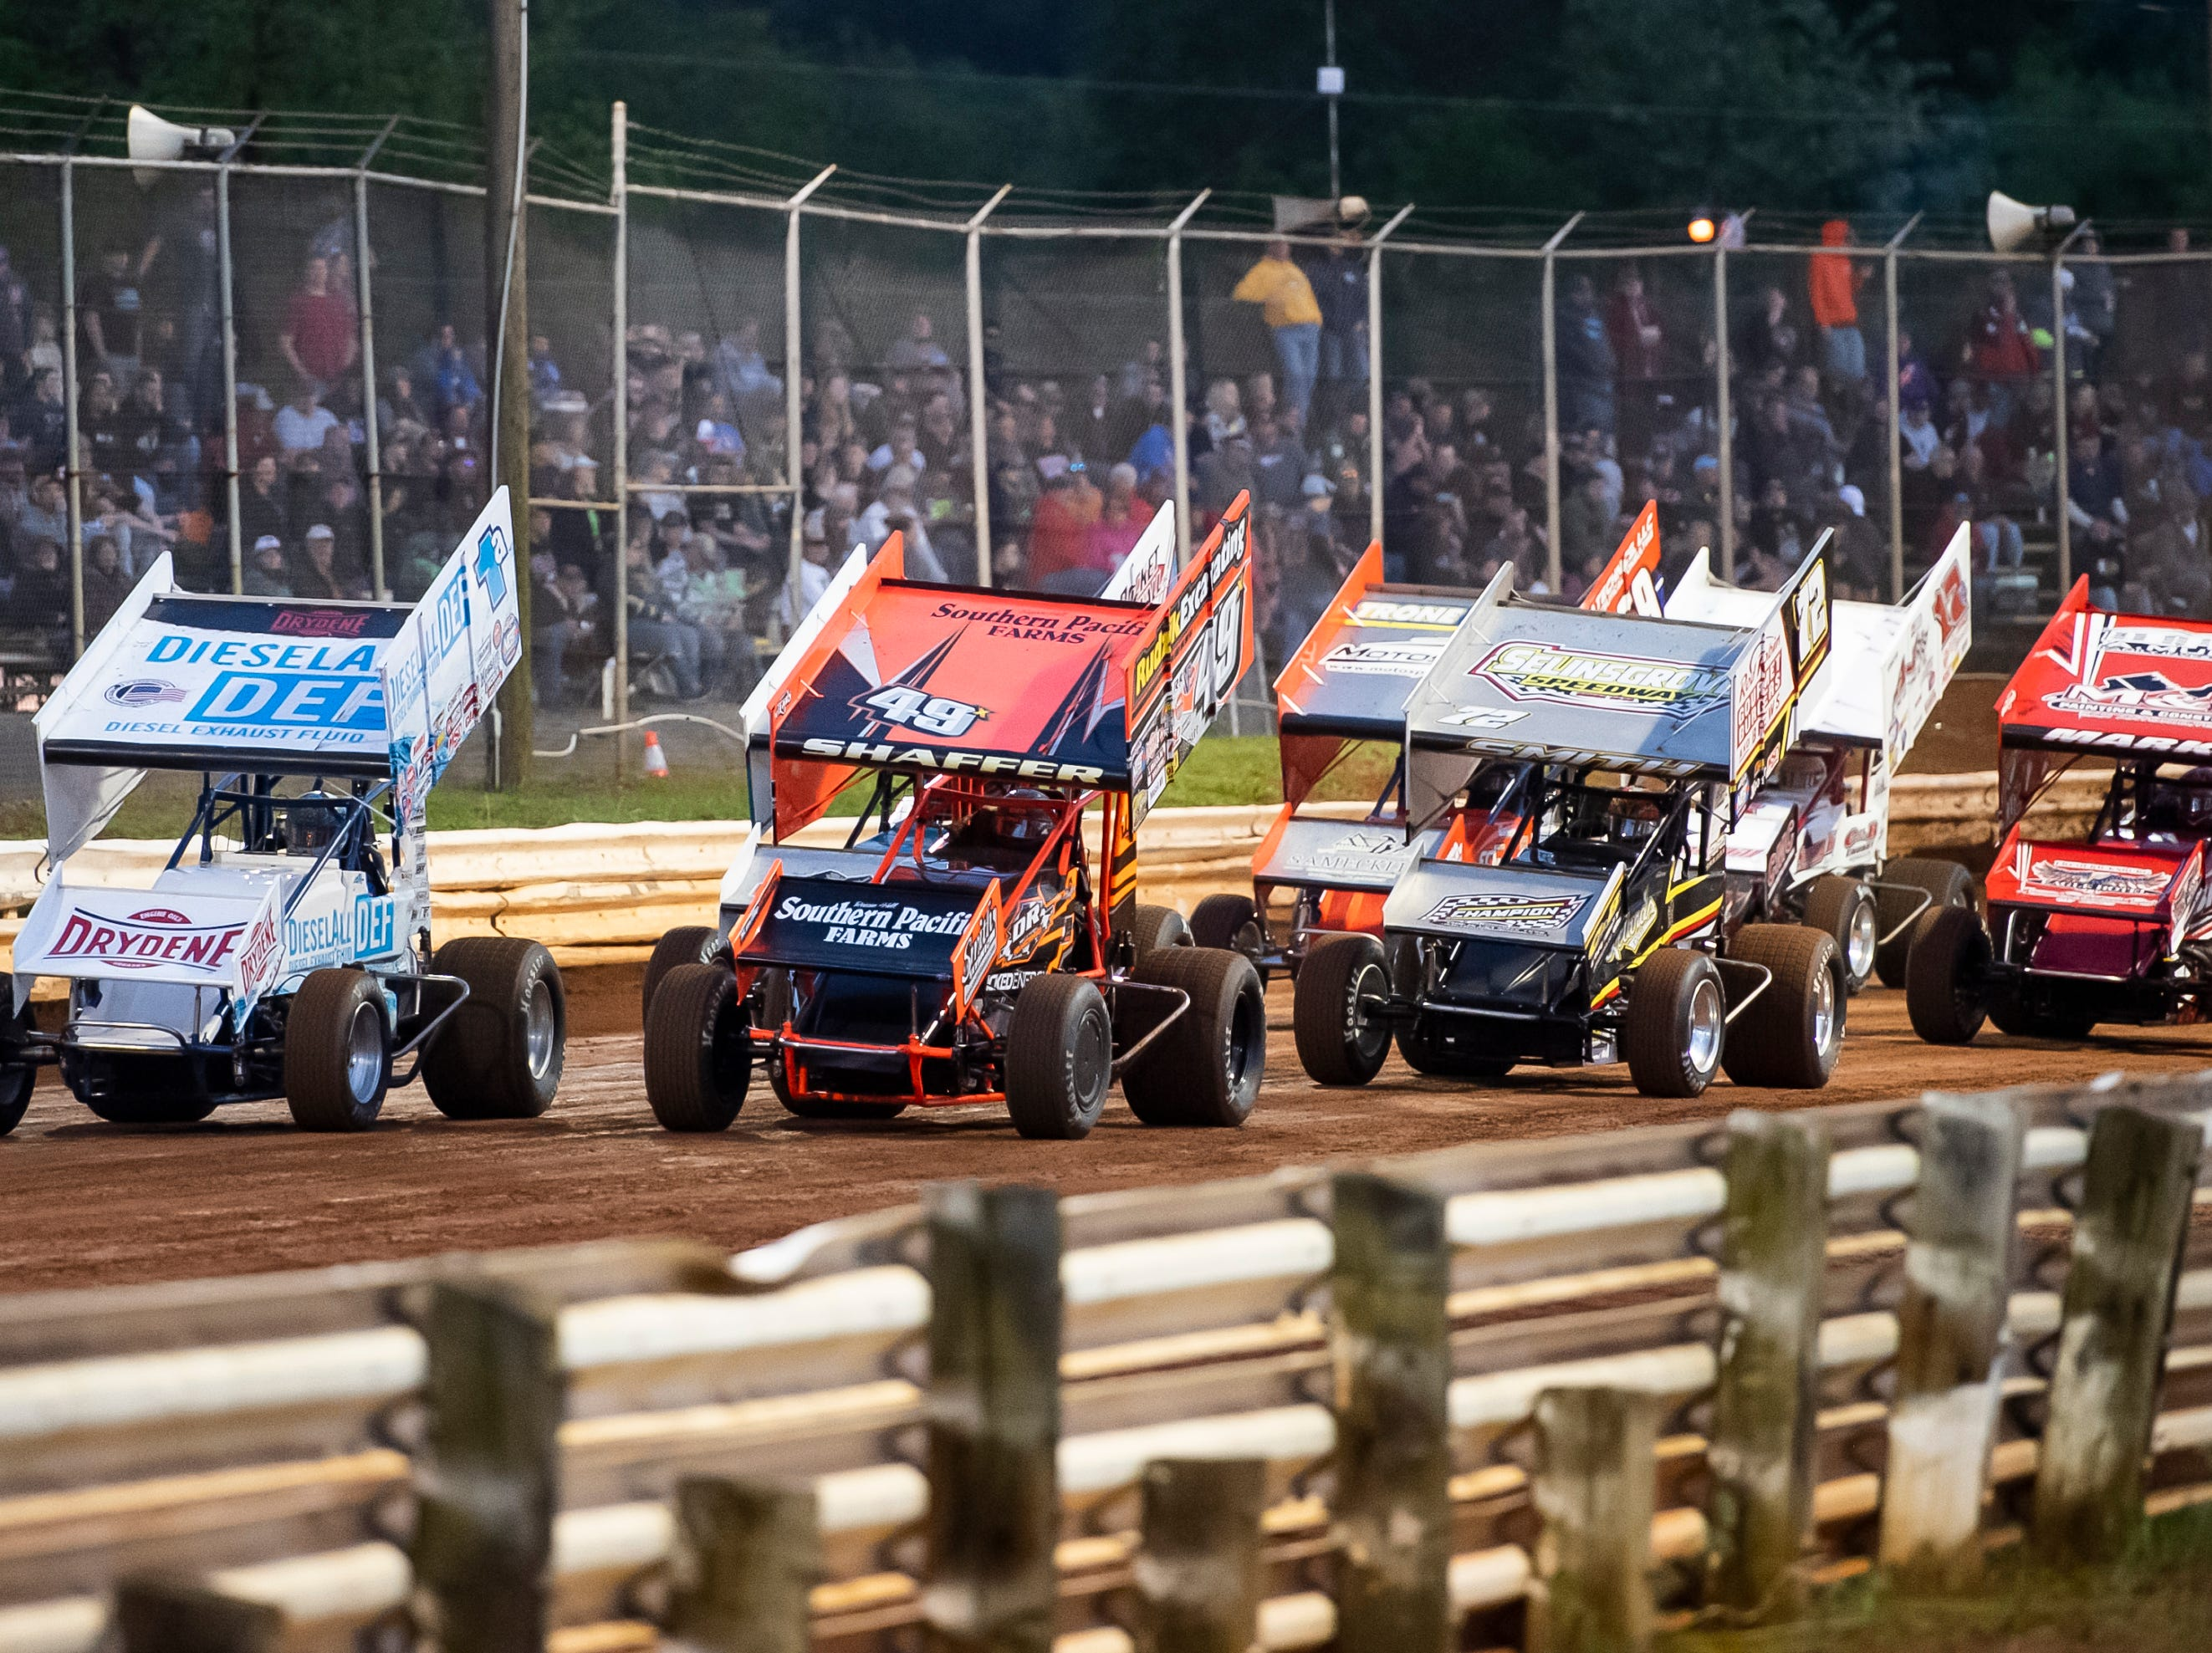 World of Outlaws Gettysburg Clash at Lincoln Speedway in Abbottstown on Wednesday, May 15, 2019.